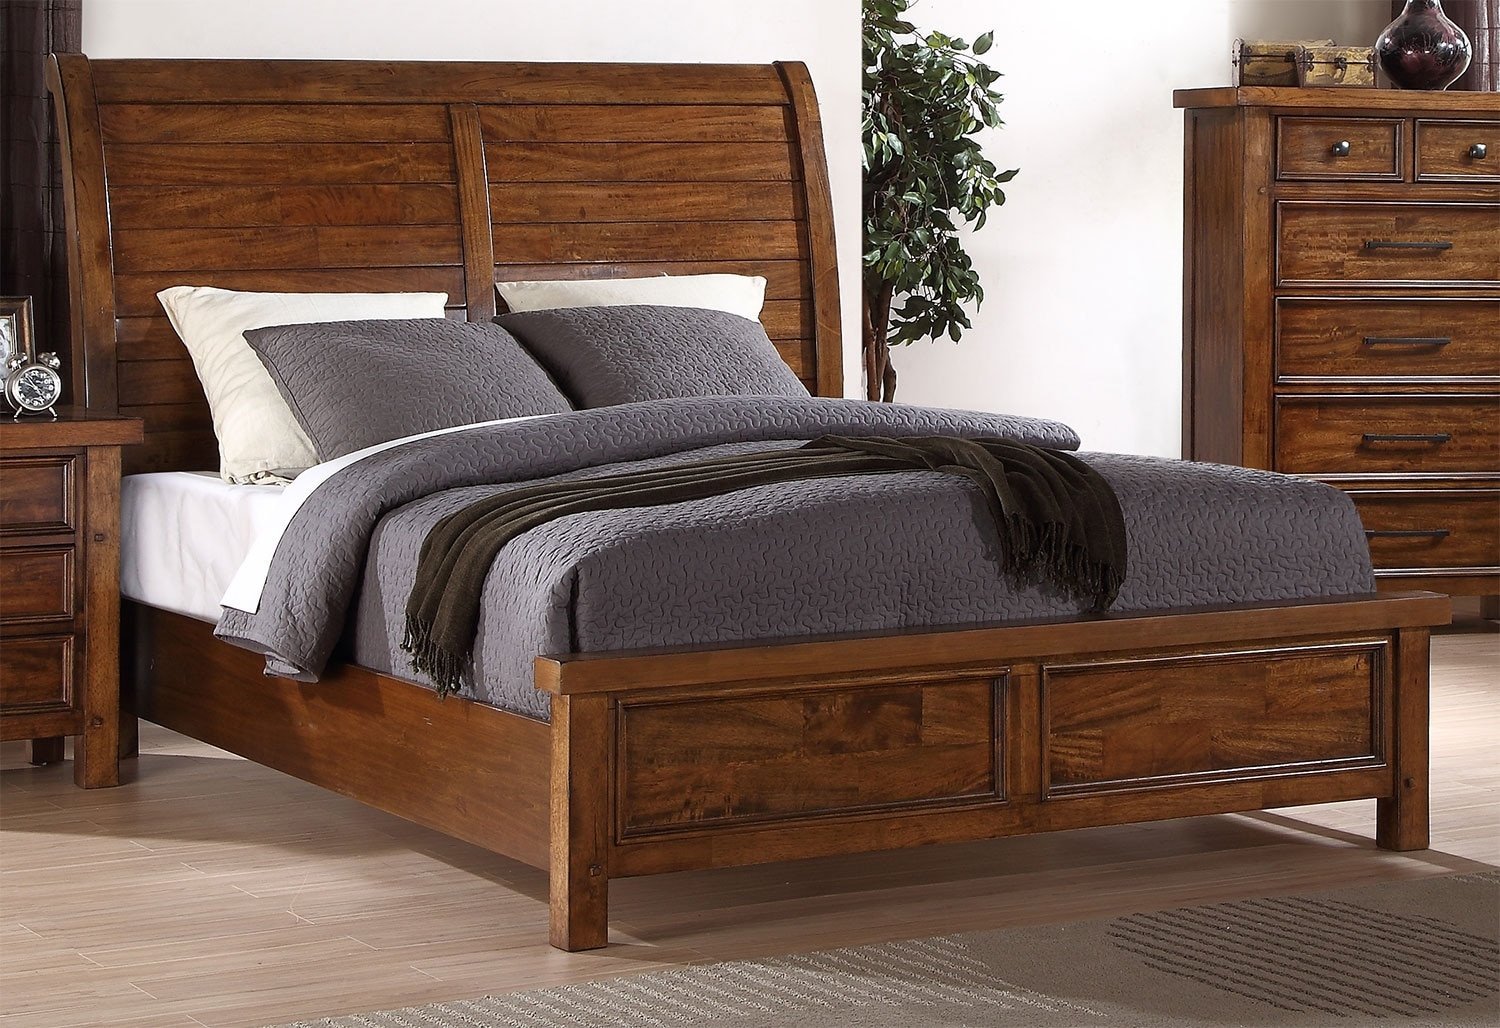 Sonoma Queen Sleigh Bed – Medium Brown